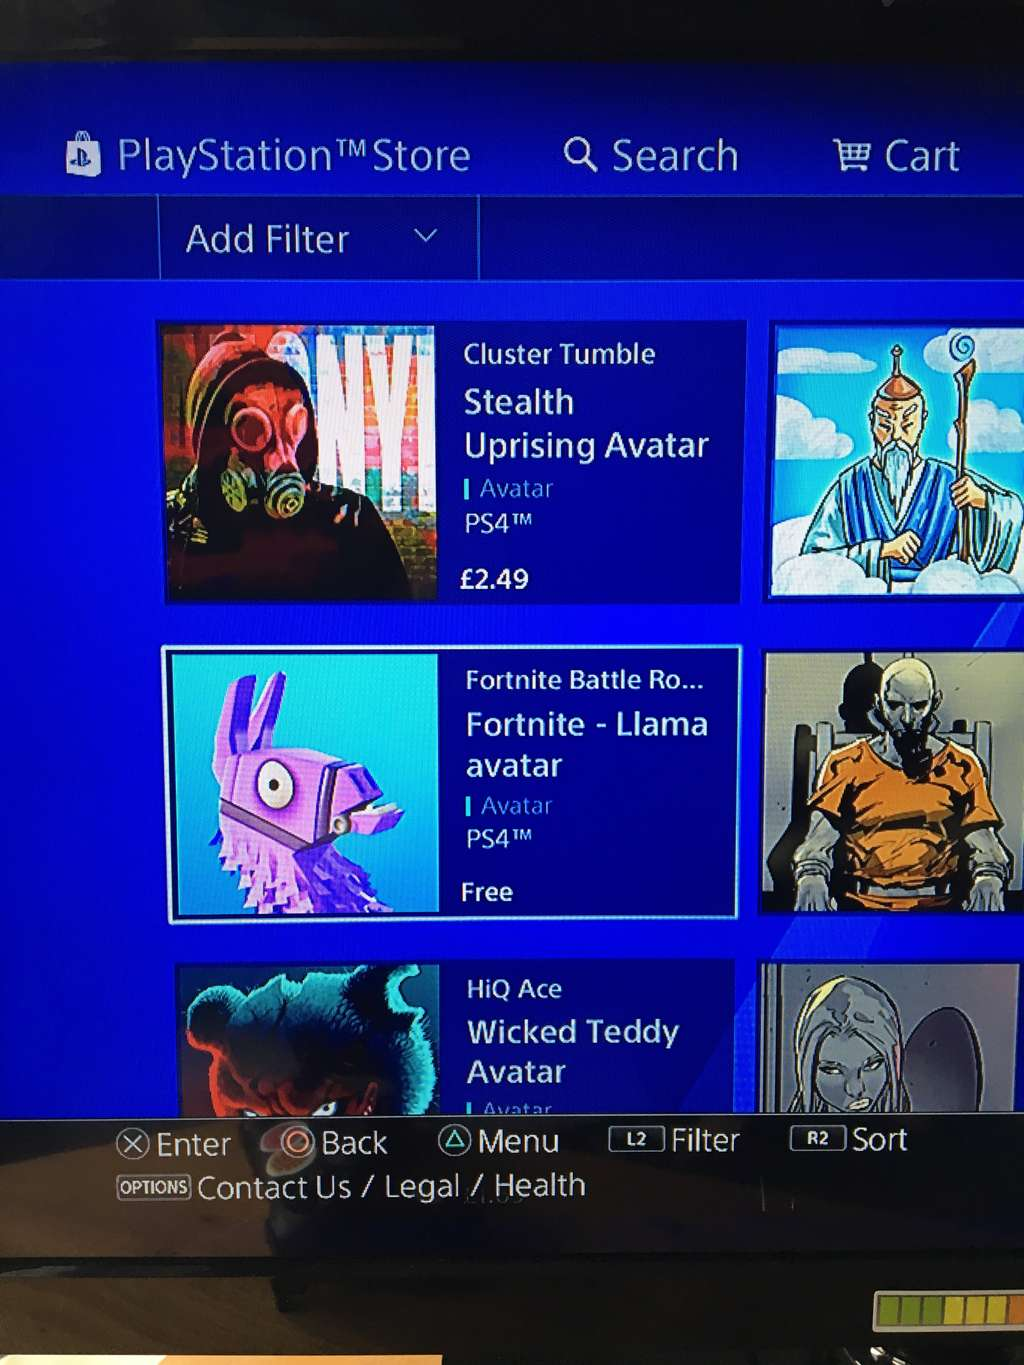 how to get playstation llama avatar